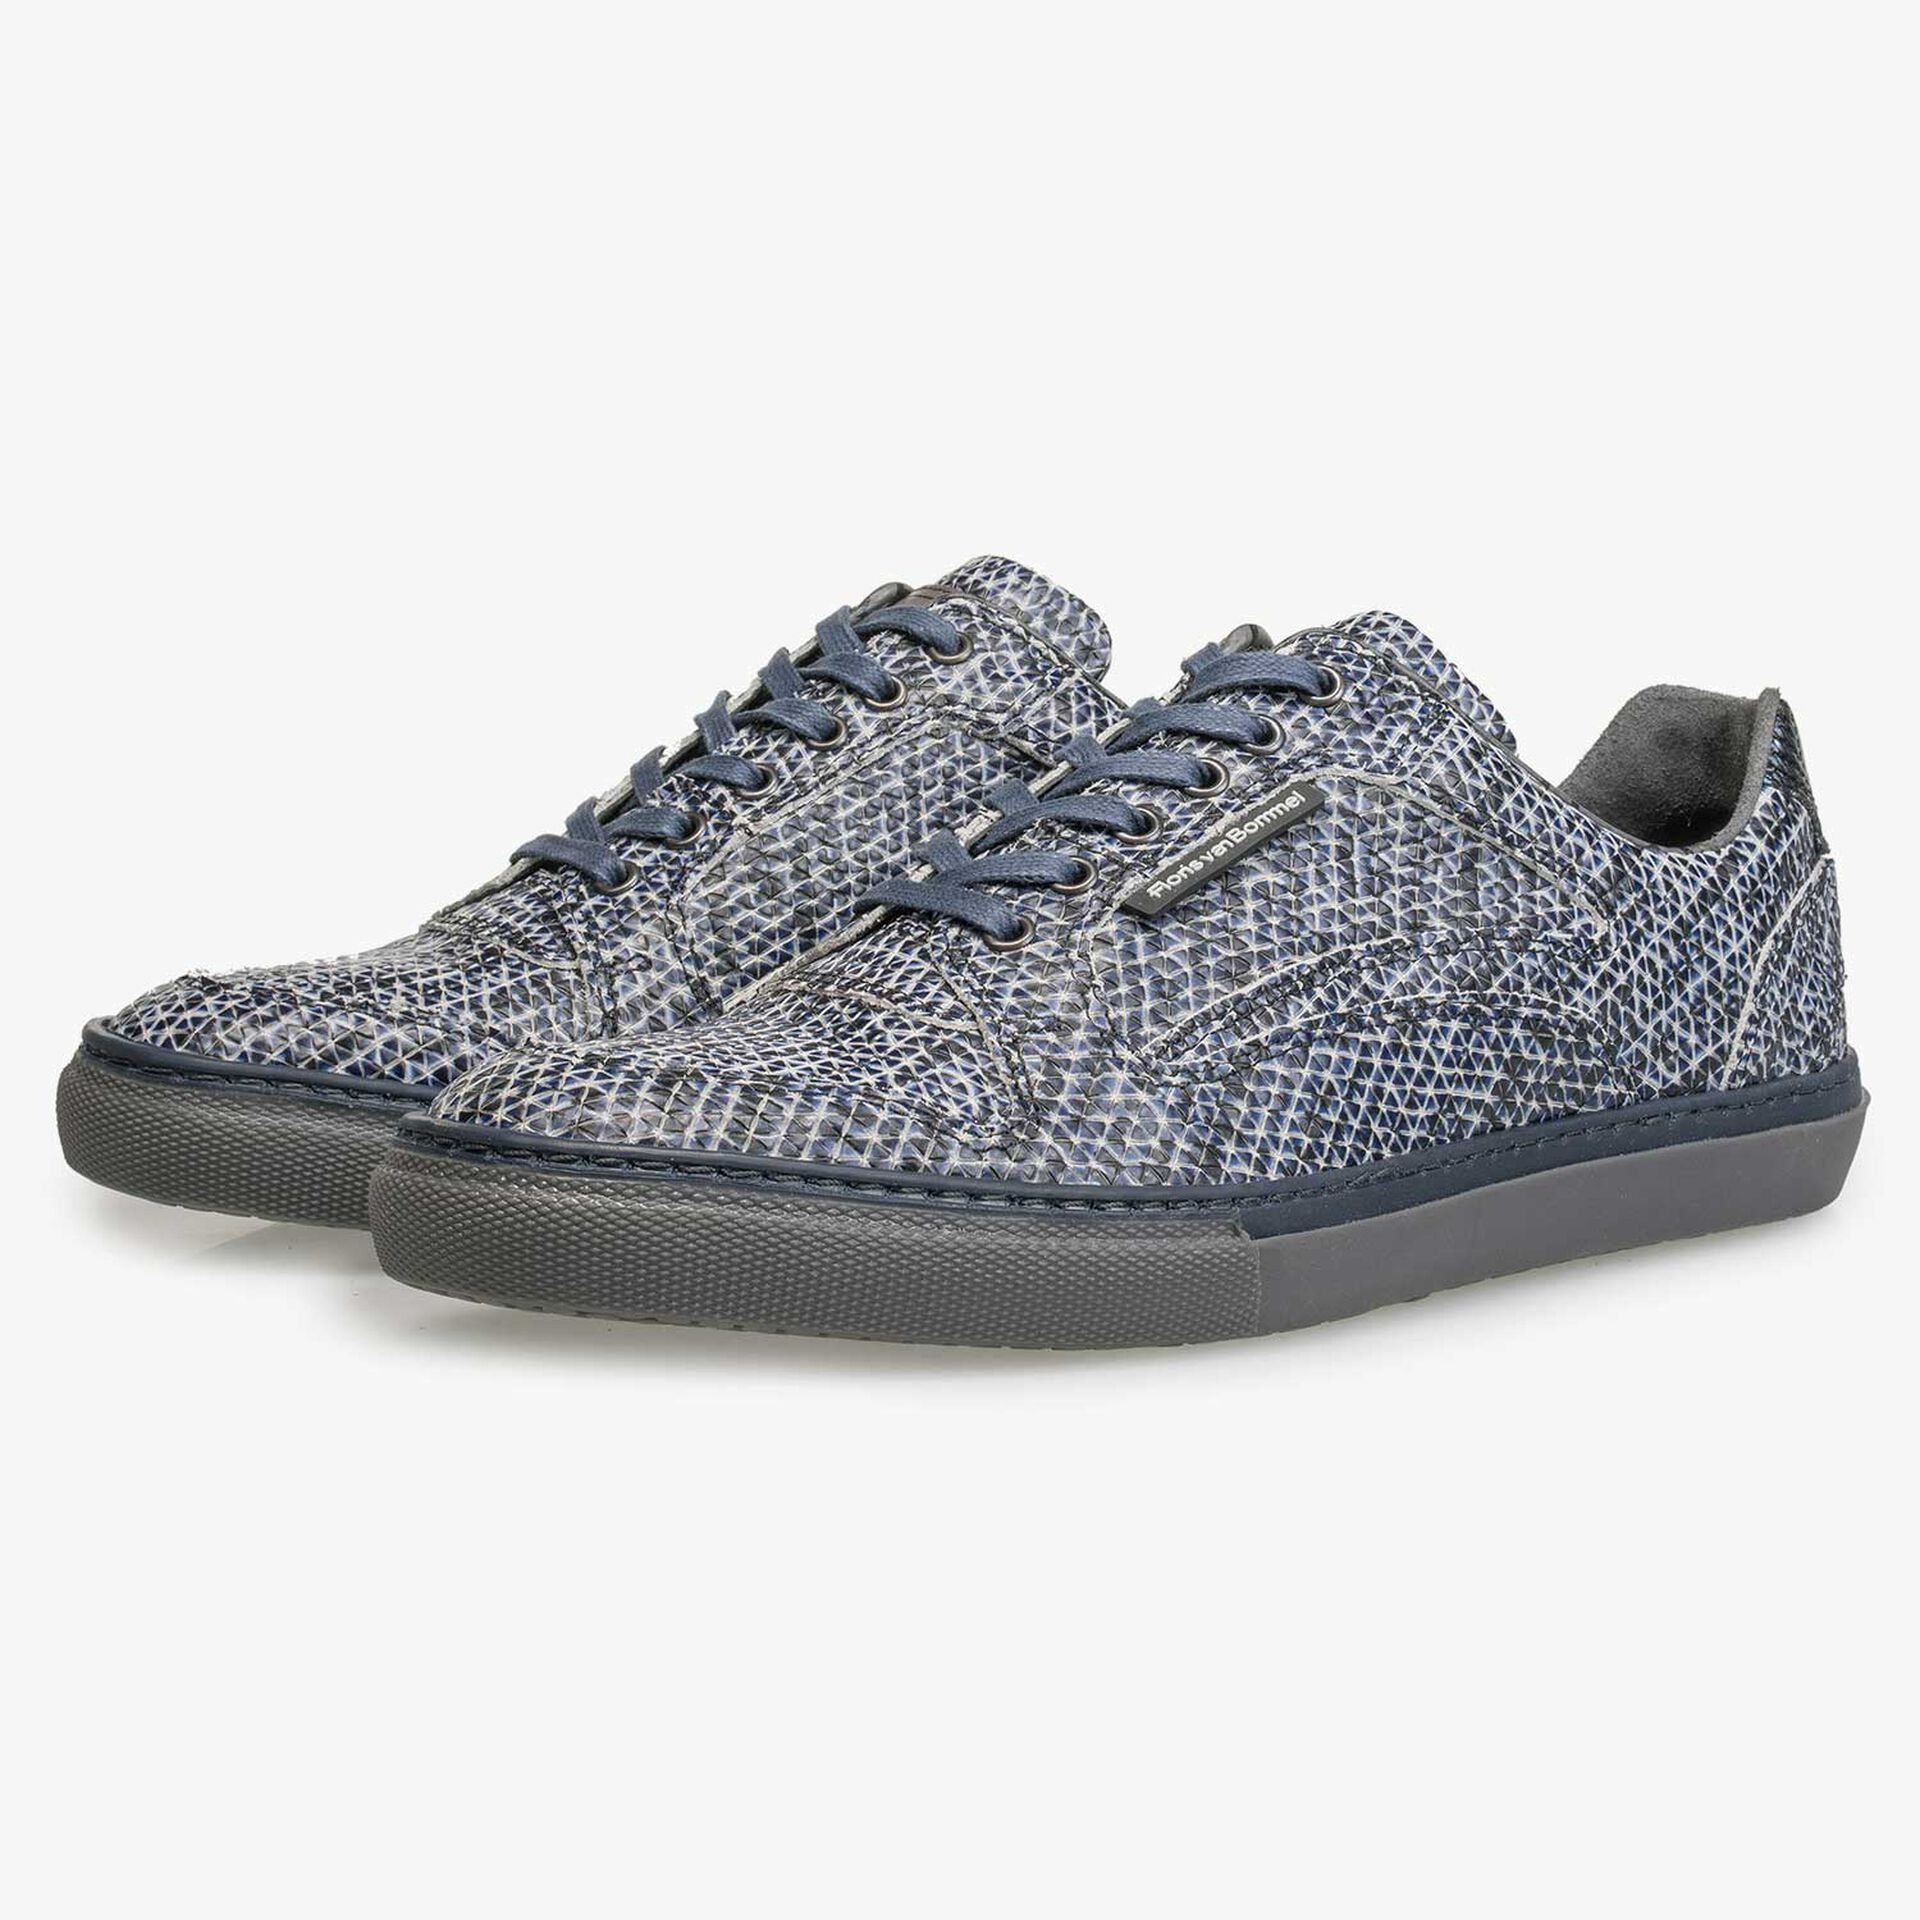 Blue patterned calf's leather sneaker